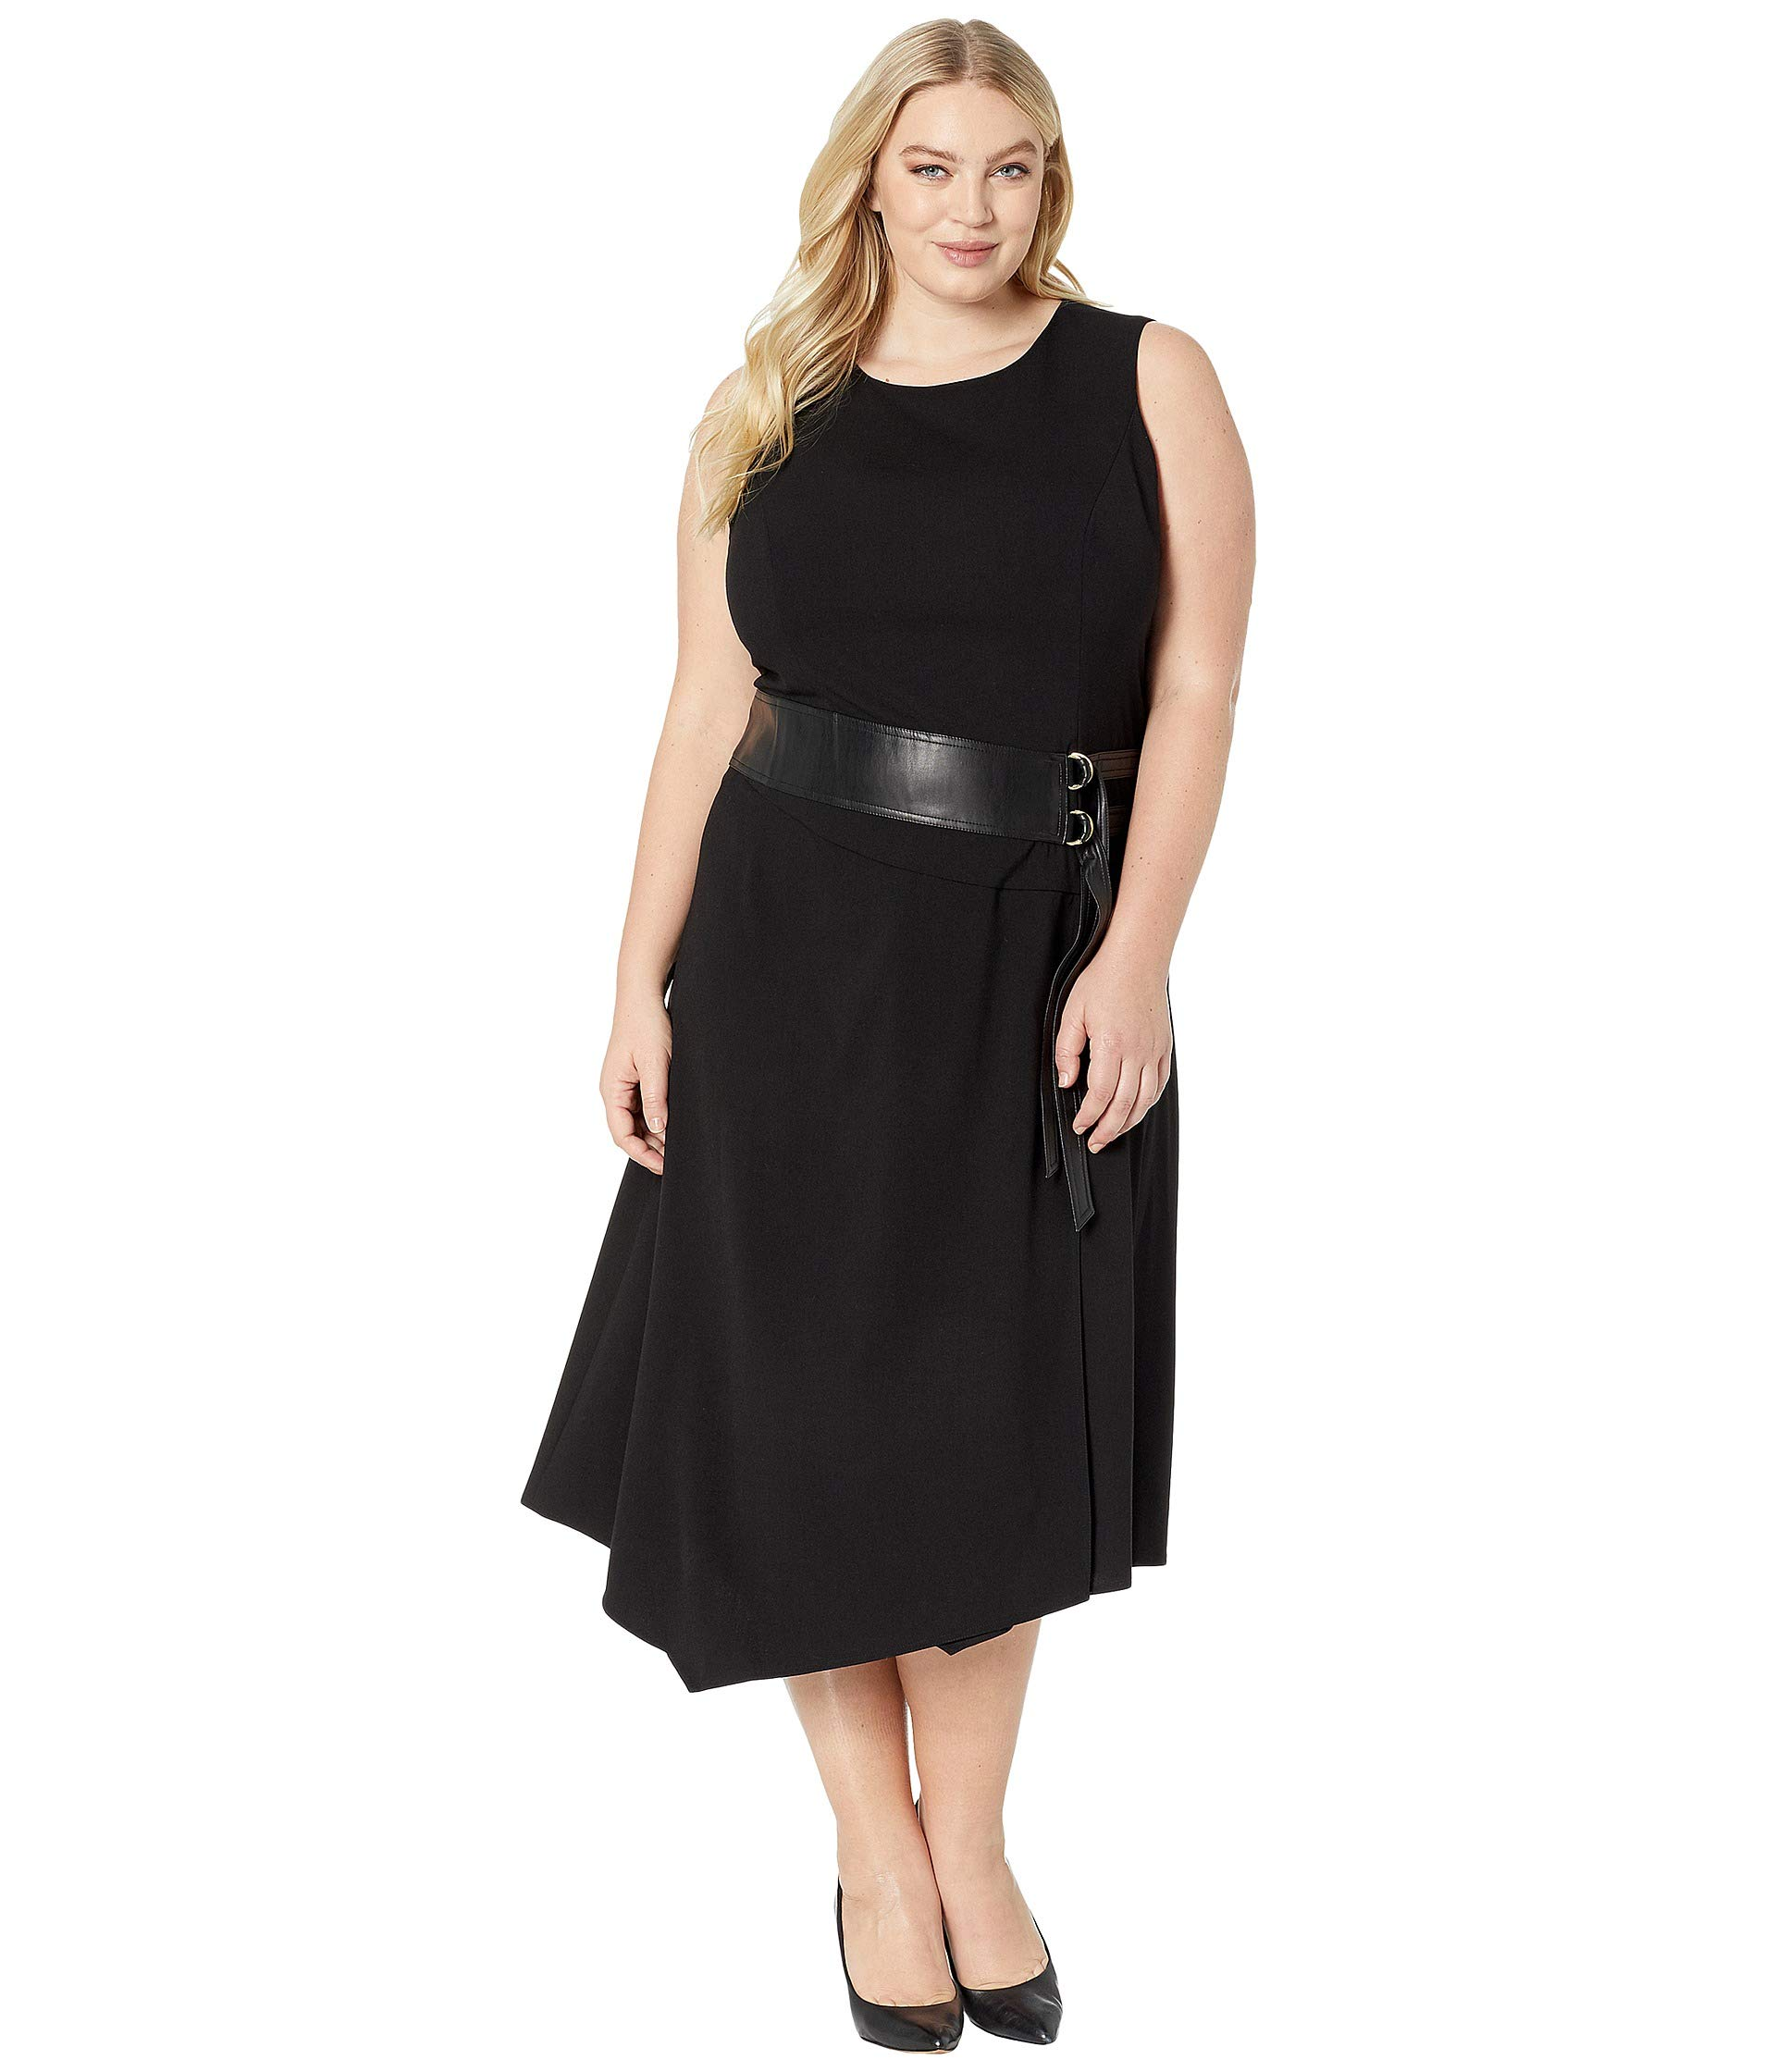 Klein Dress Leather With Plus Black Faux Calvin Size Belt Lux And fq77wZ